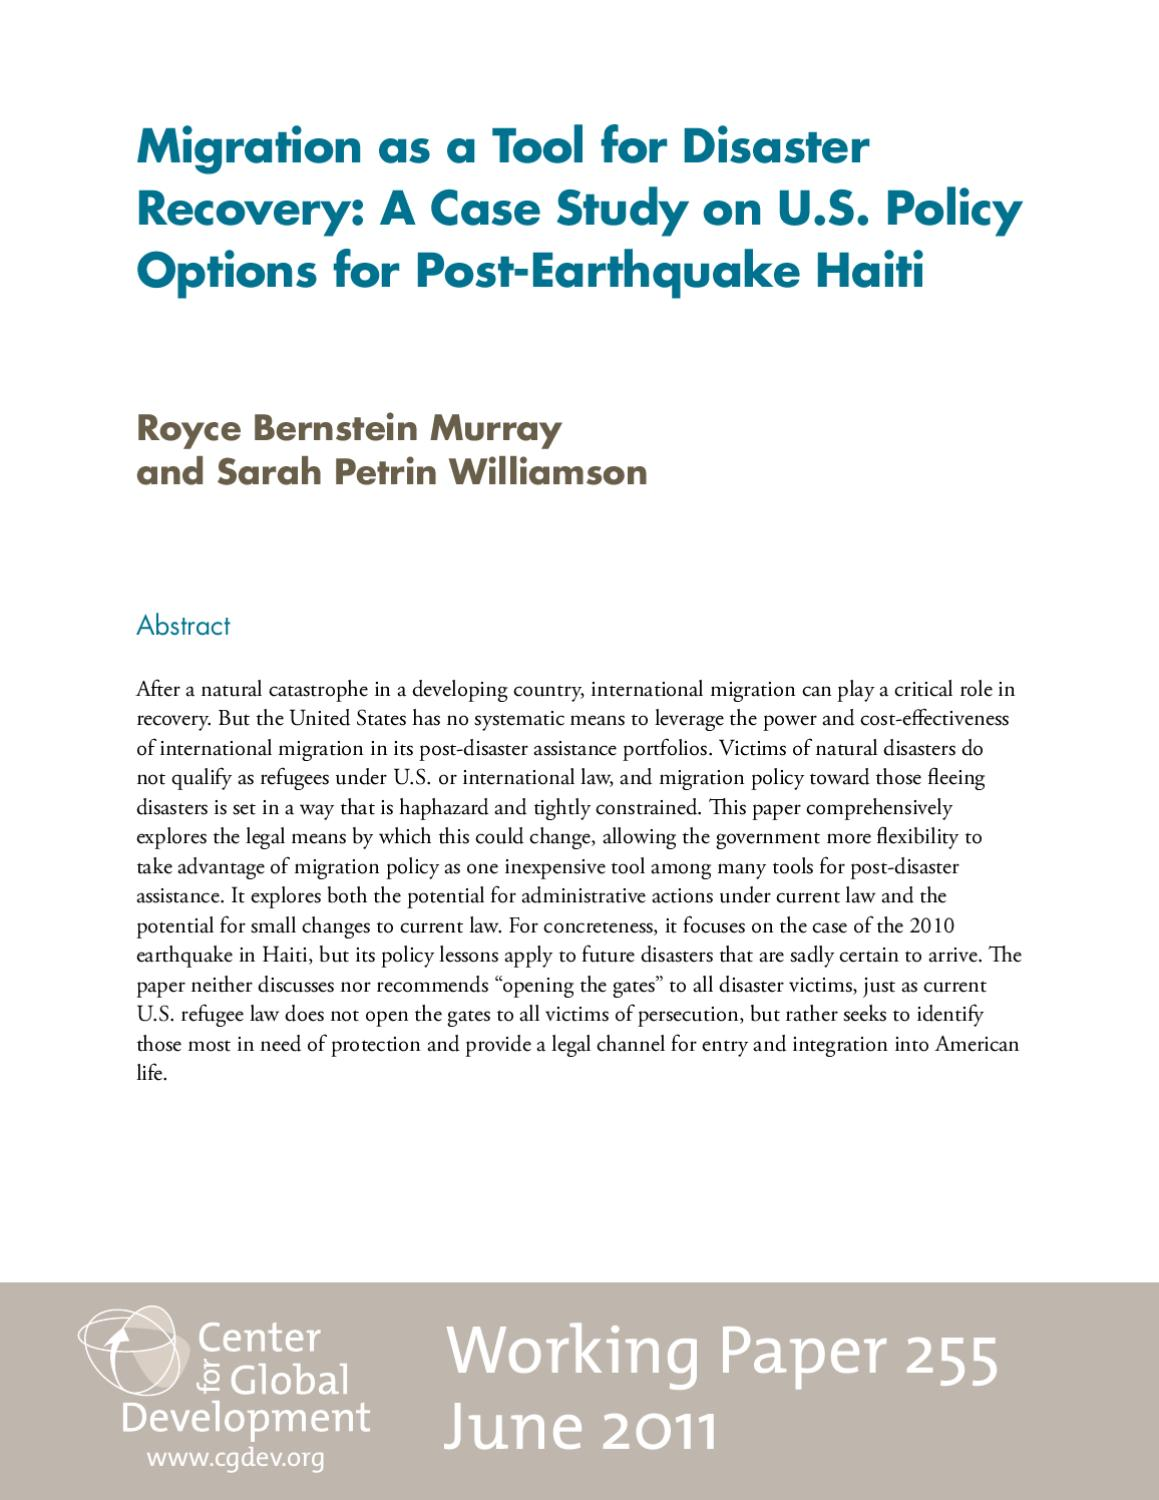 Migration as a Tool for Disaster Recovery: Haiti Case Study by